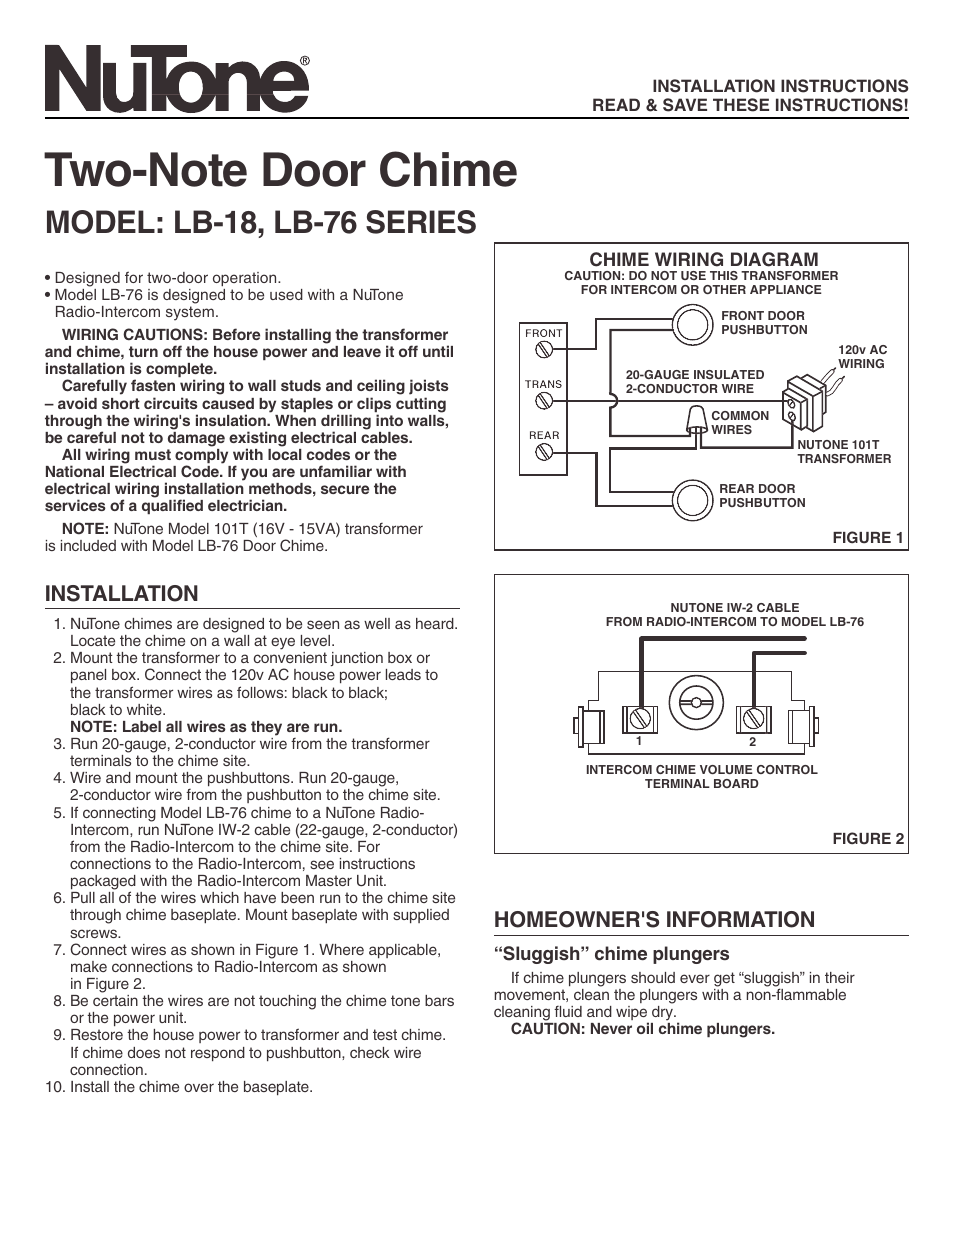 nutone two note door chime lb 76 page1 nutone doorbell wiring diagram & rittenhouse po 2 door chime mechanism nutone scovill intercom wiring diagram at n-0.co